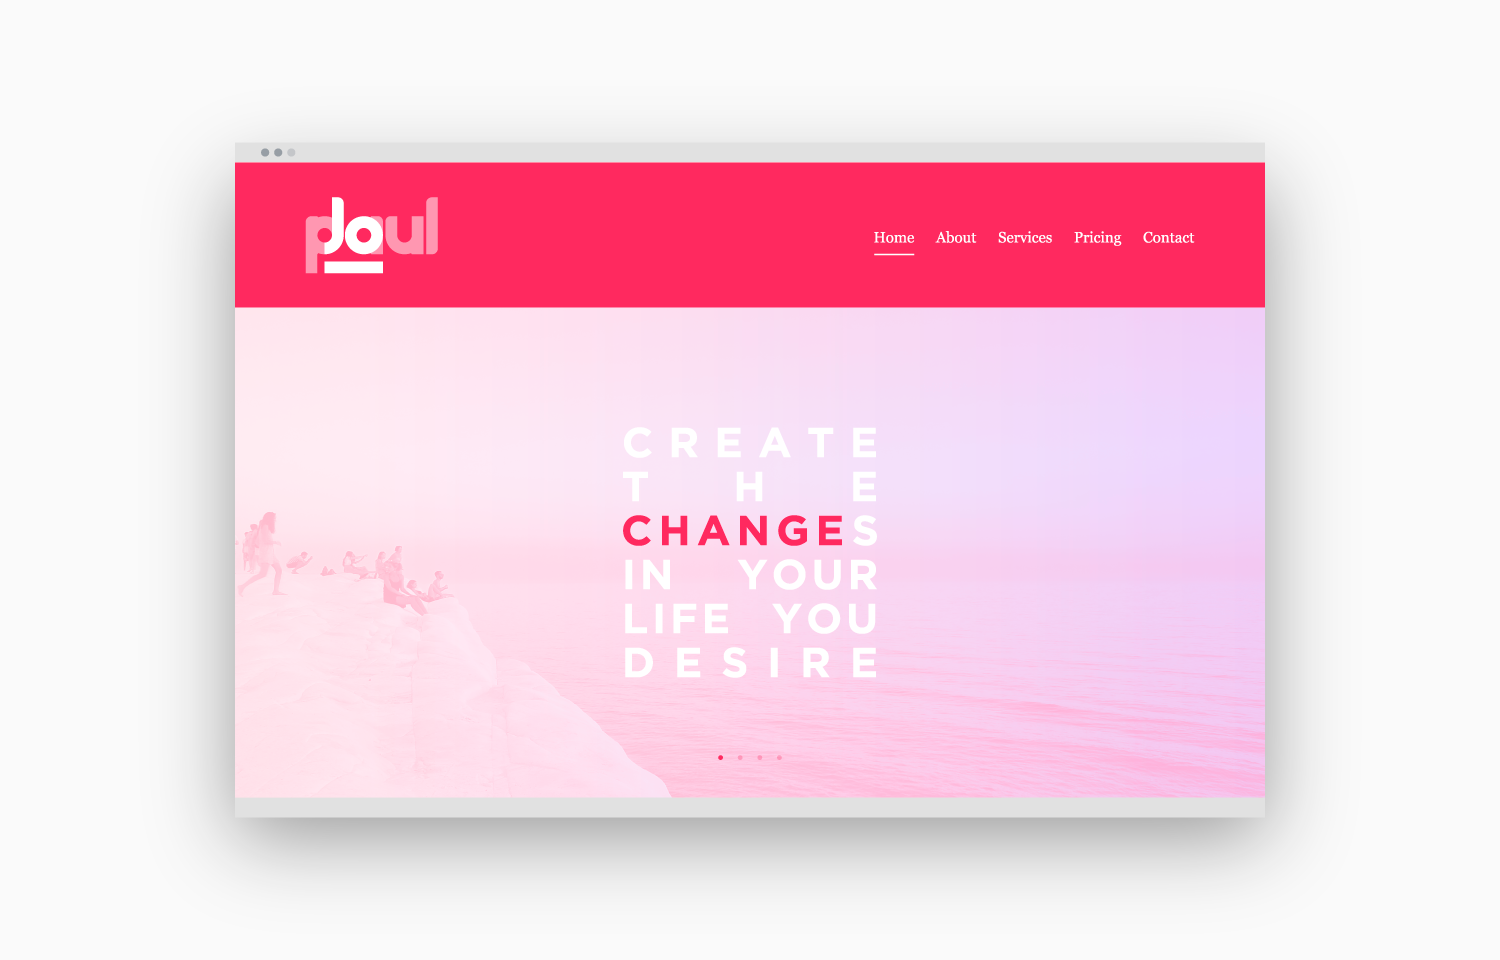 """Changes"" load screen sequence for Jo Paul website - 1a."